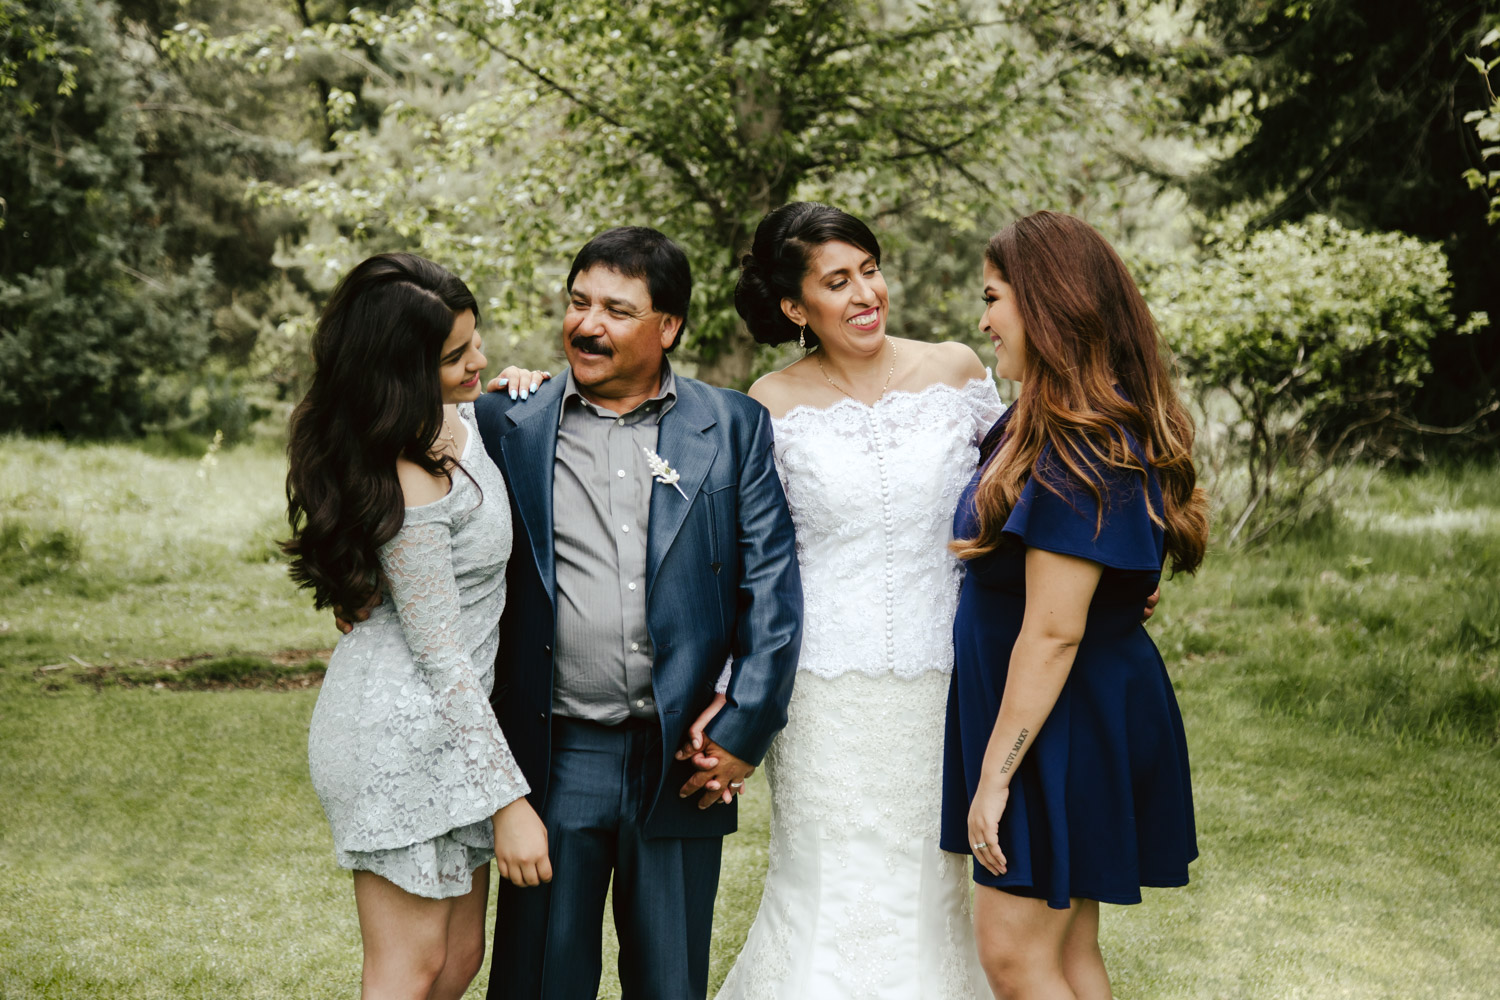 Boise Wedding and Engagement Photographer at Kathryn Albertson's Park